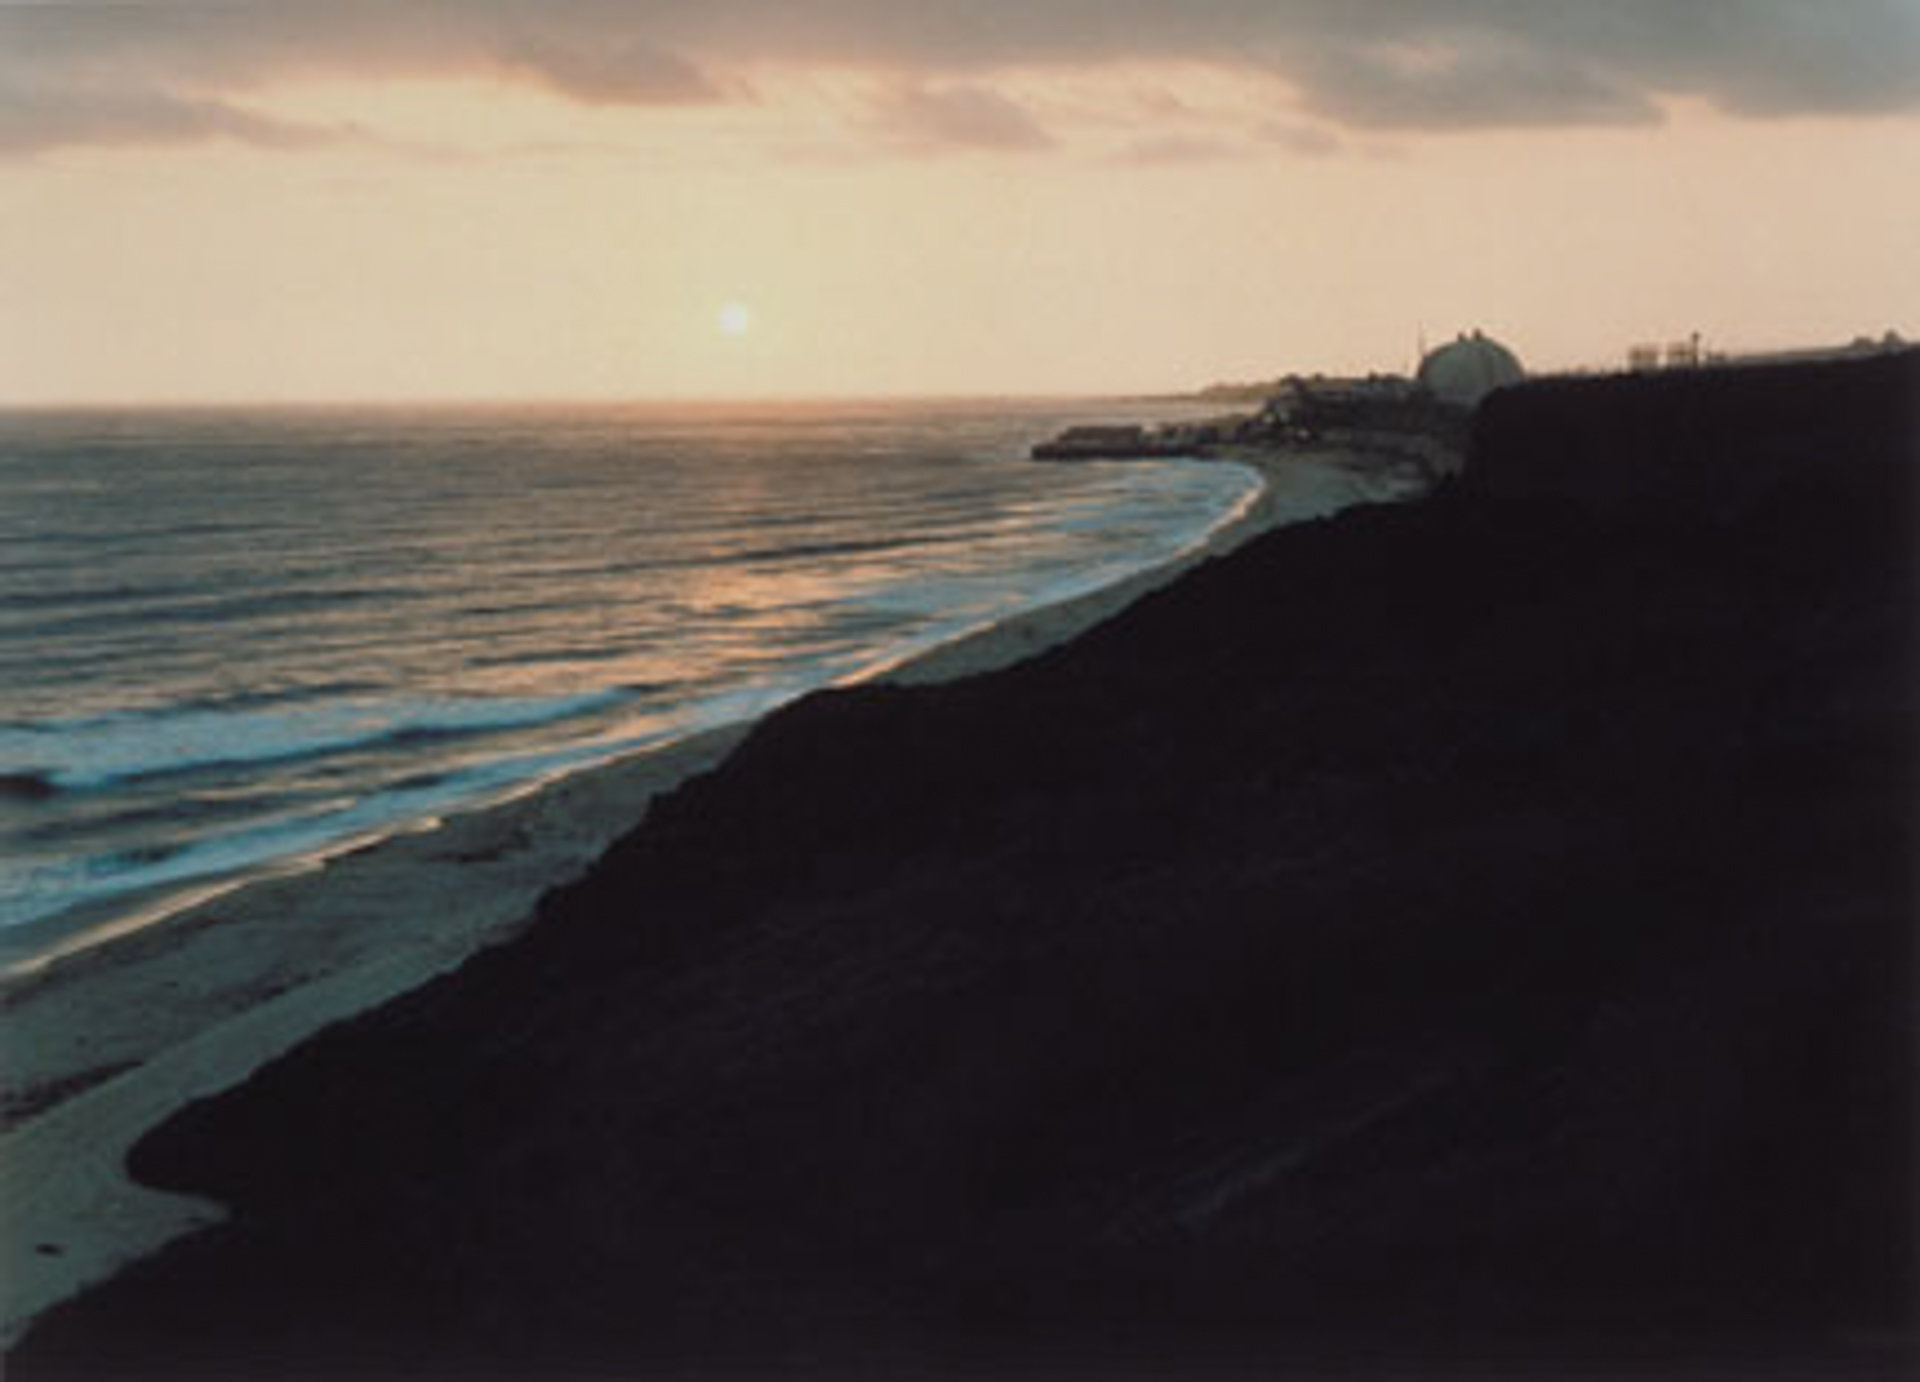 John_Pfahl--Power places--14sanonofre.jpg